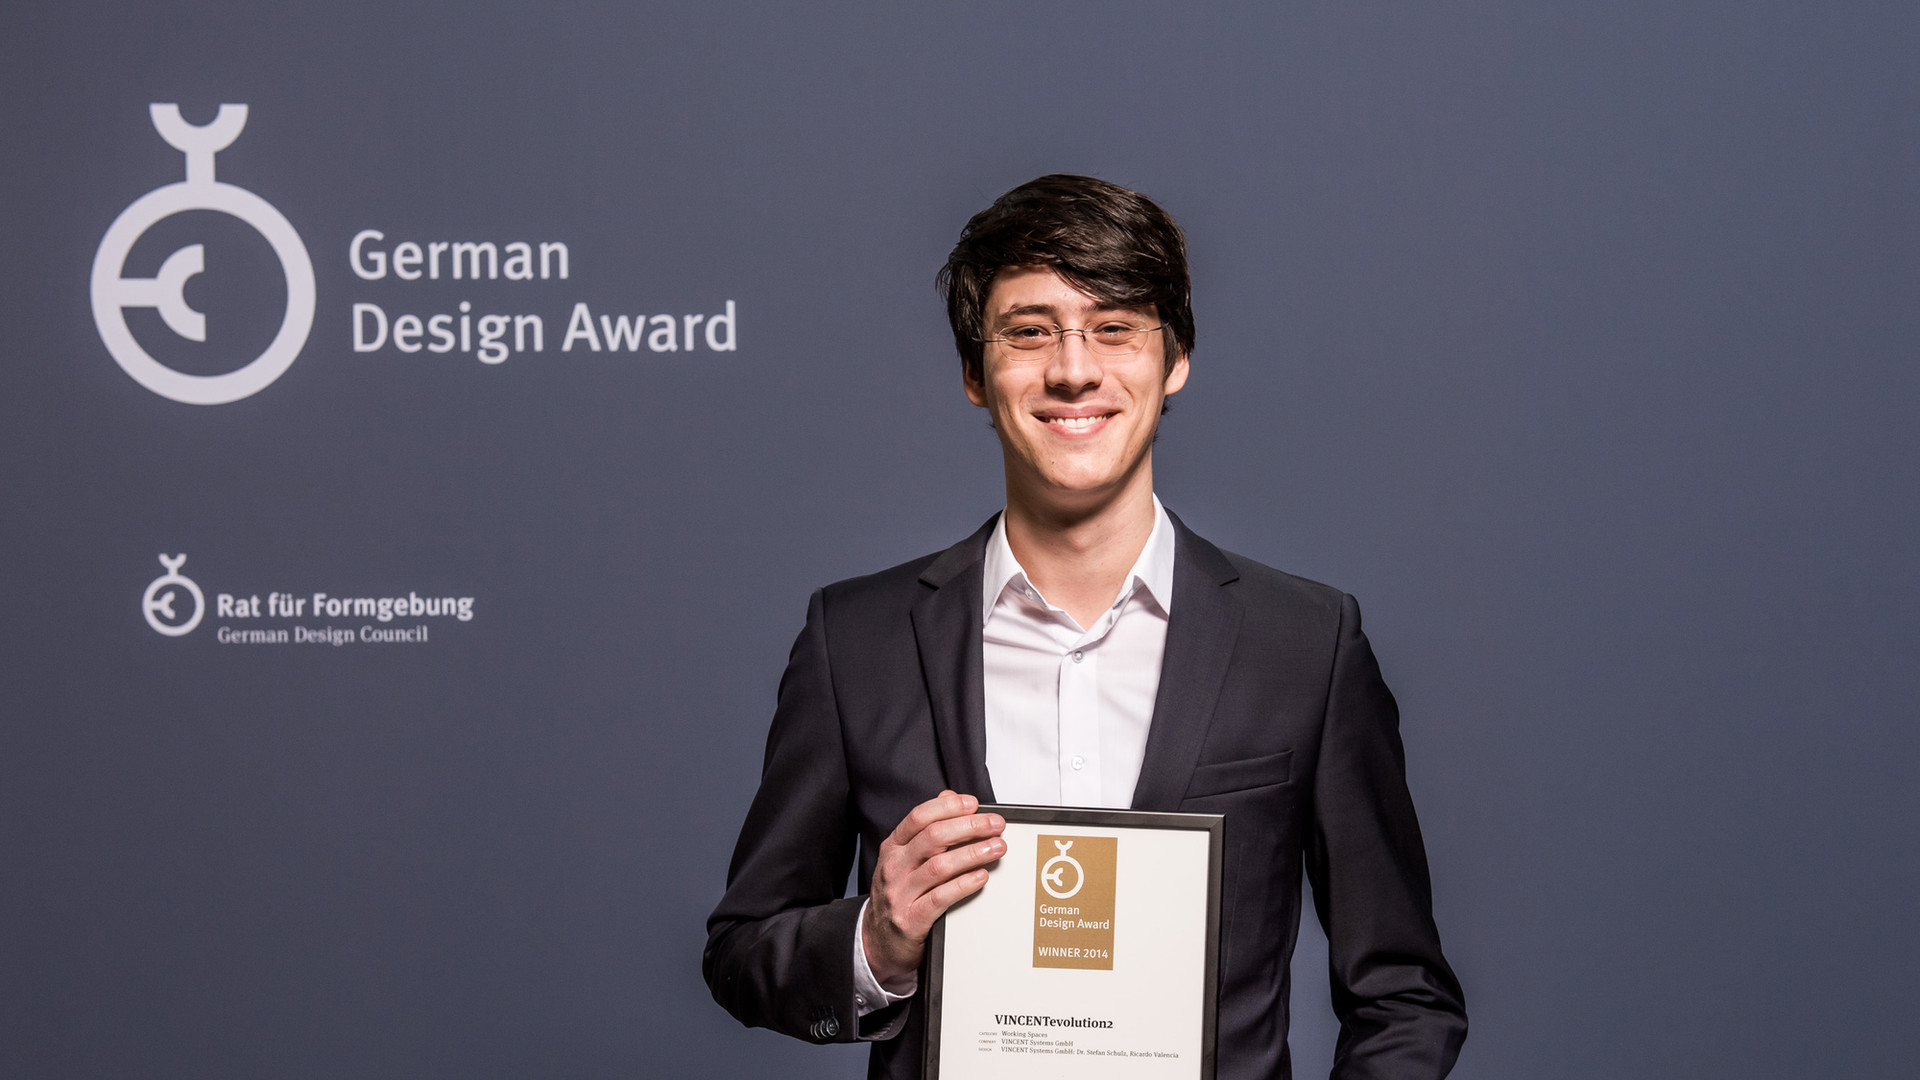 German Design Award 2014